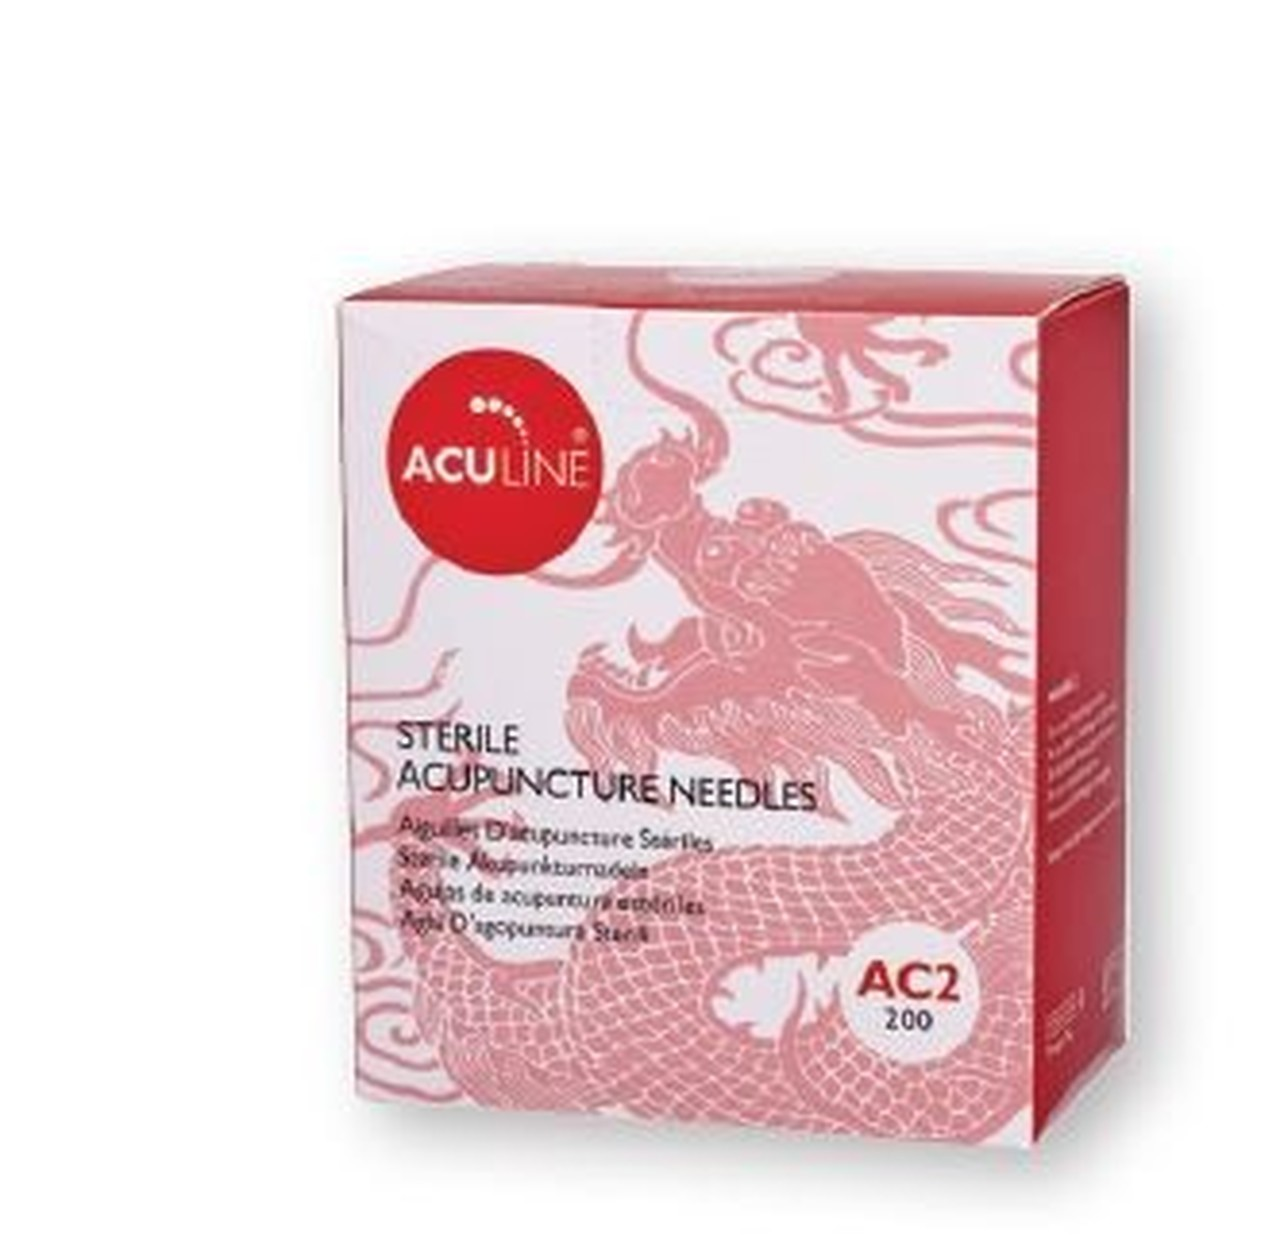 .22x50mm - Aculine Copper Handle Acupuncture Needles